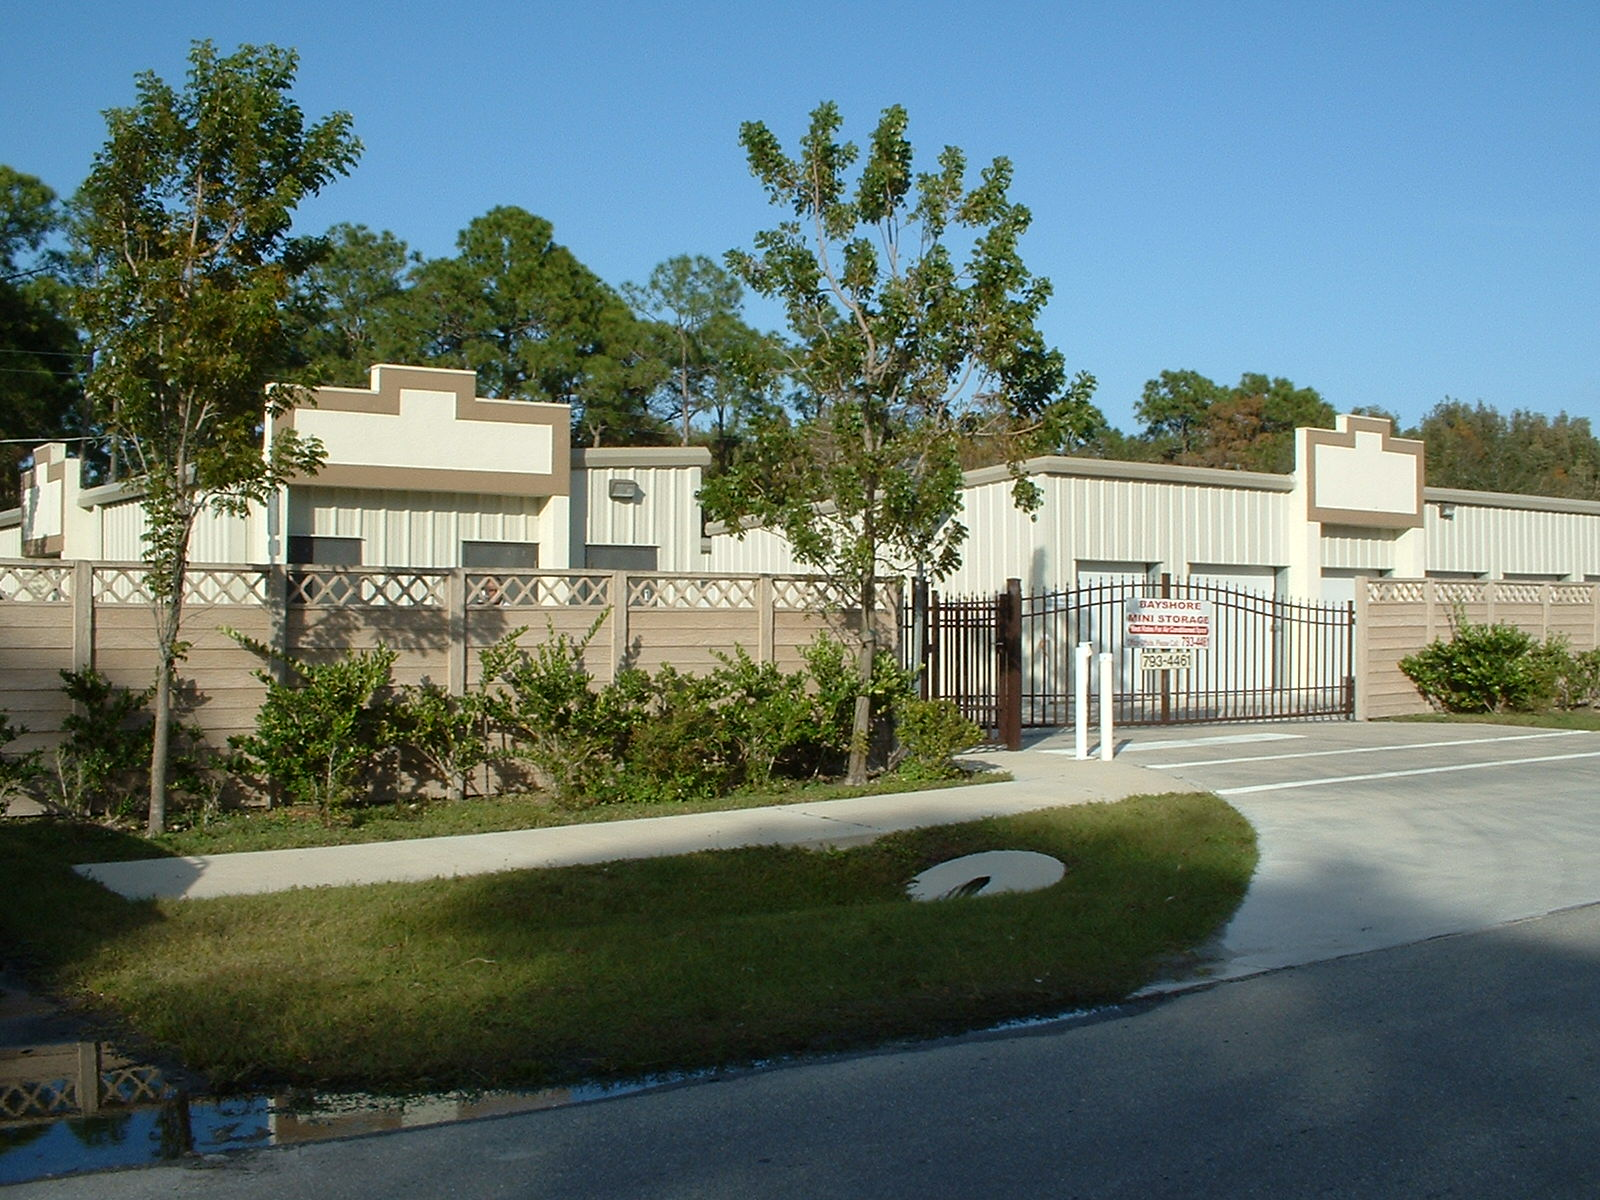 Bayshore Mini Storage In Naples Fl Near Van Buren Ave